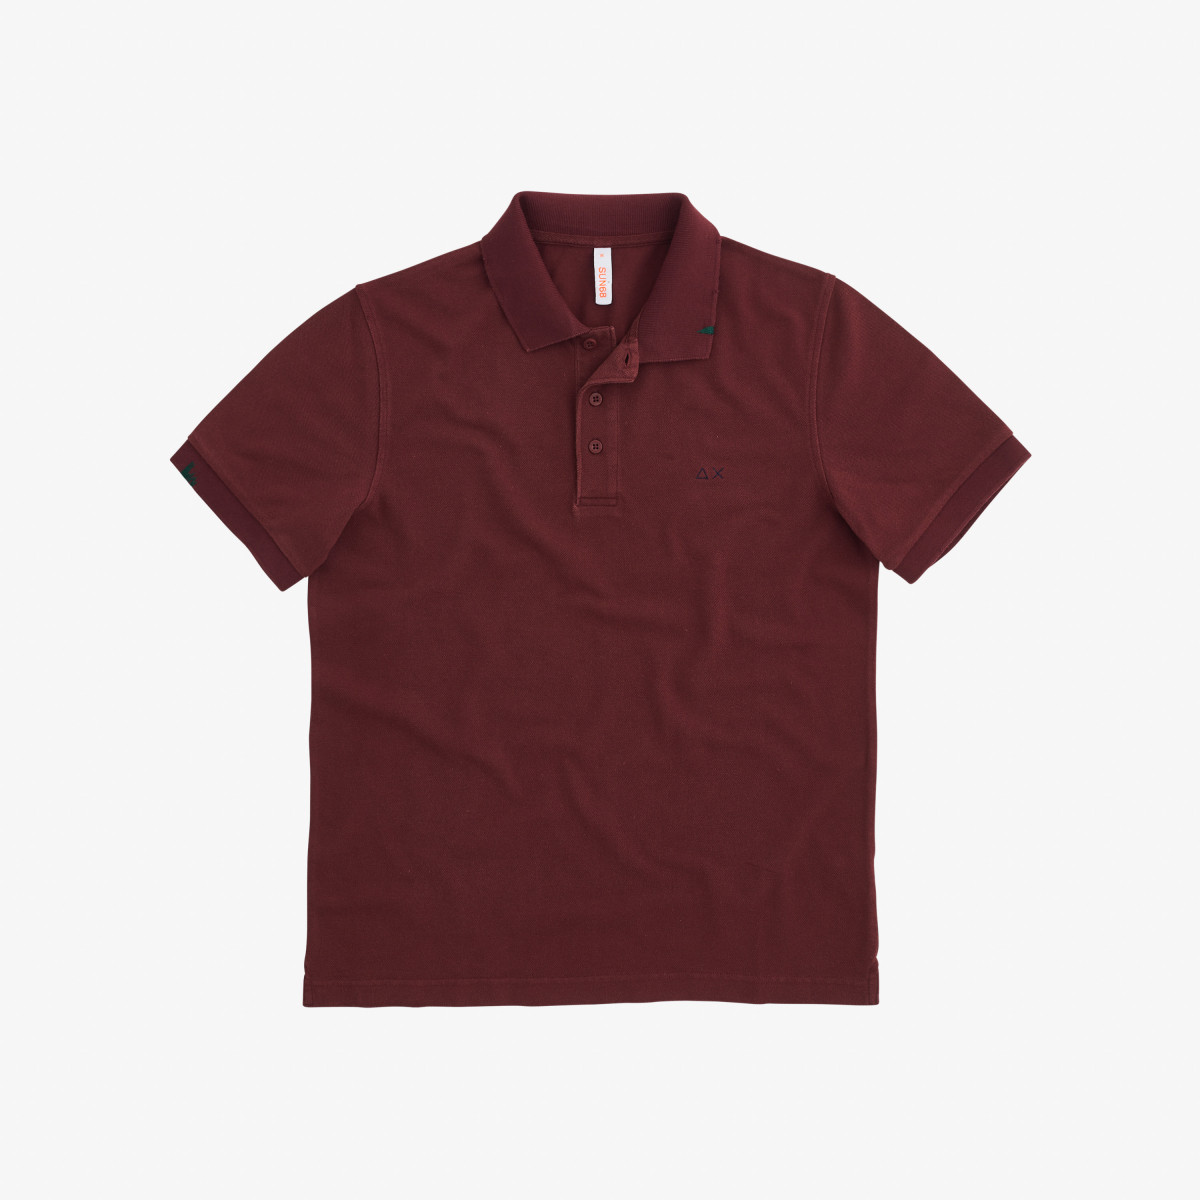 POLO VINTAGE SOLID BORDEAUX